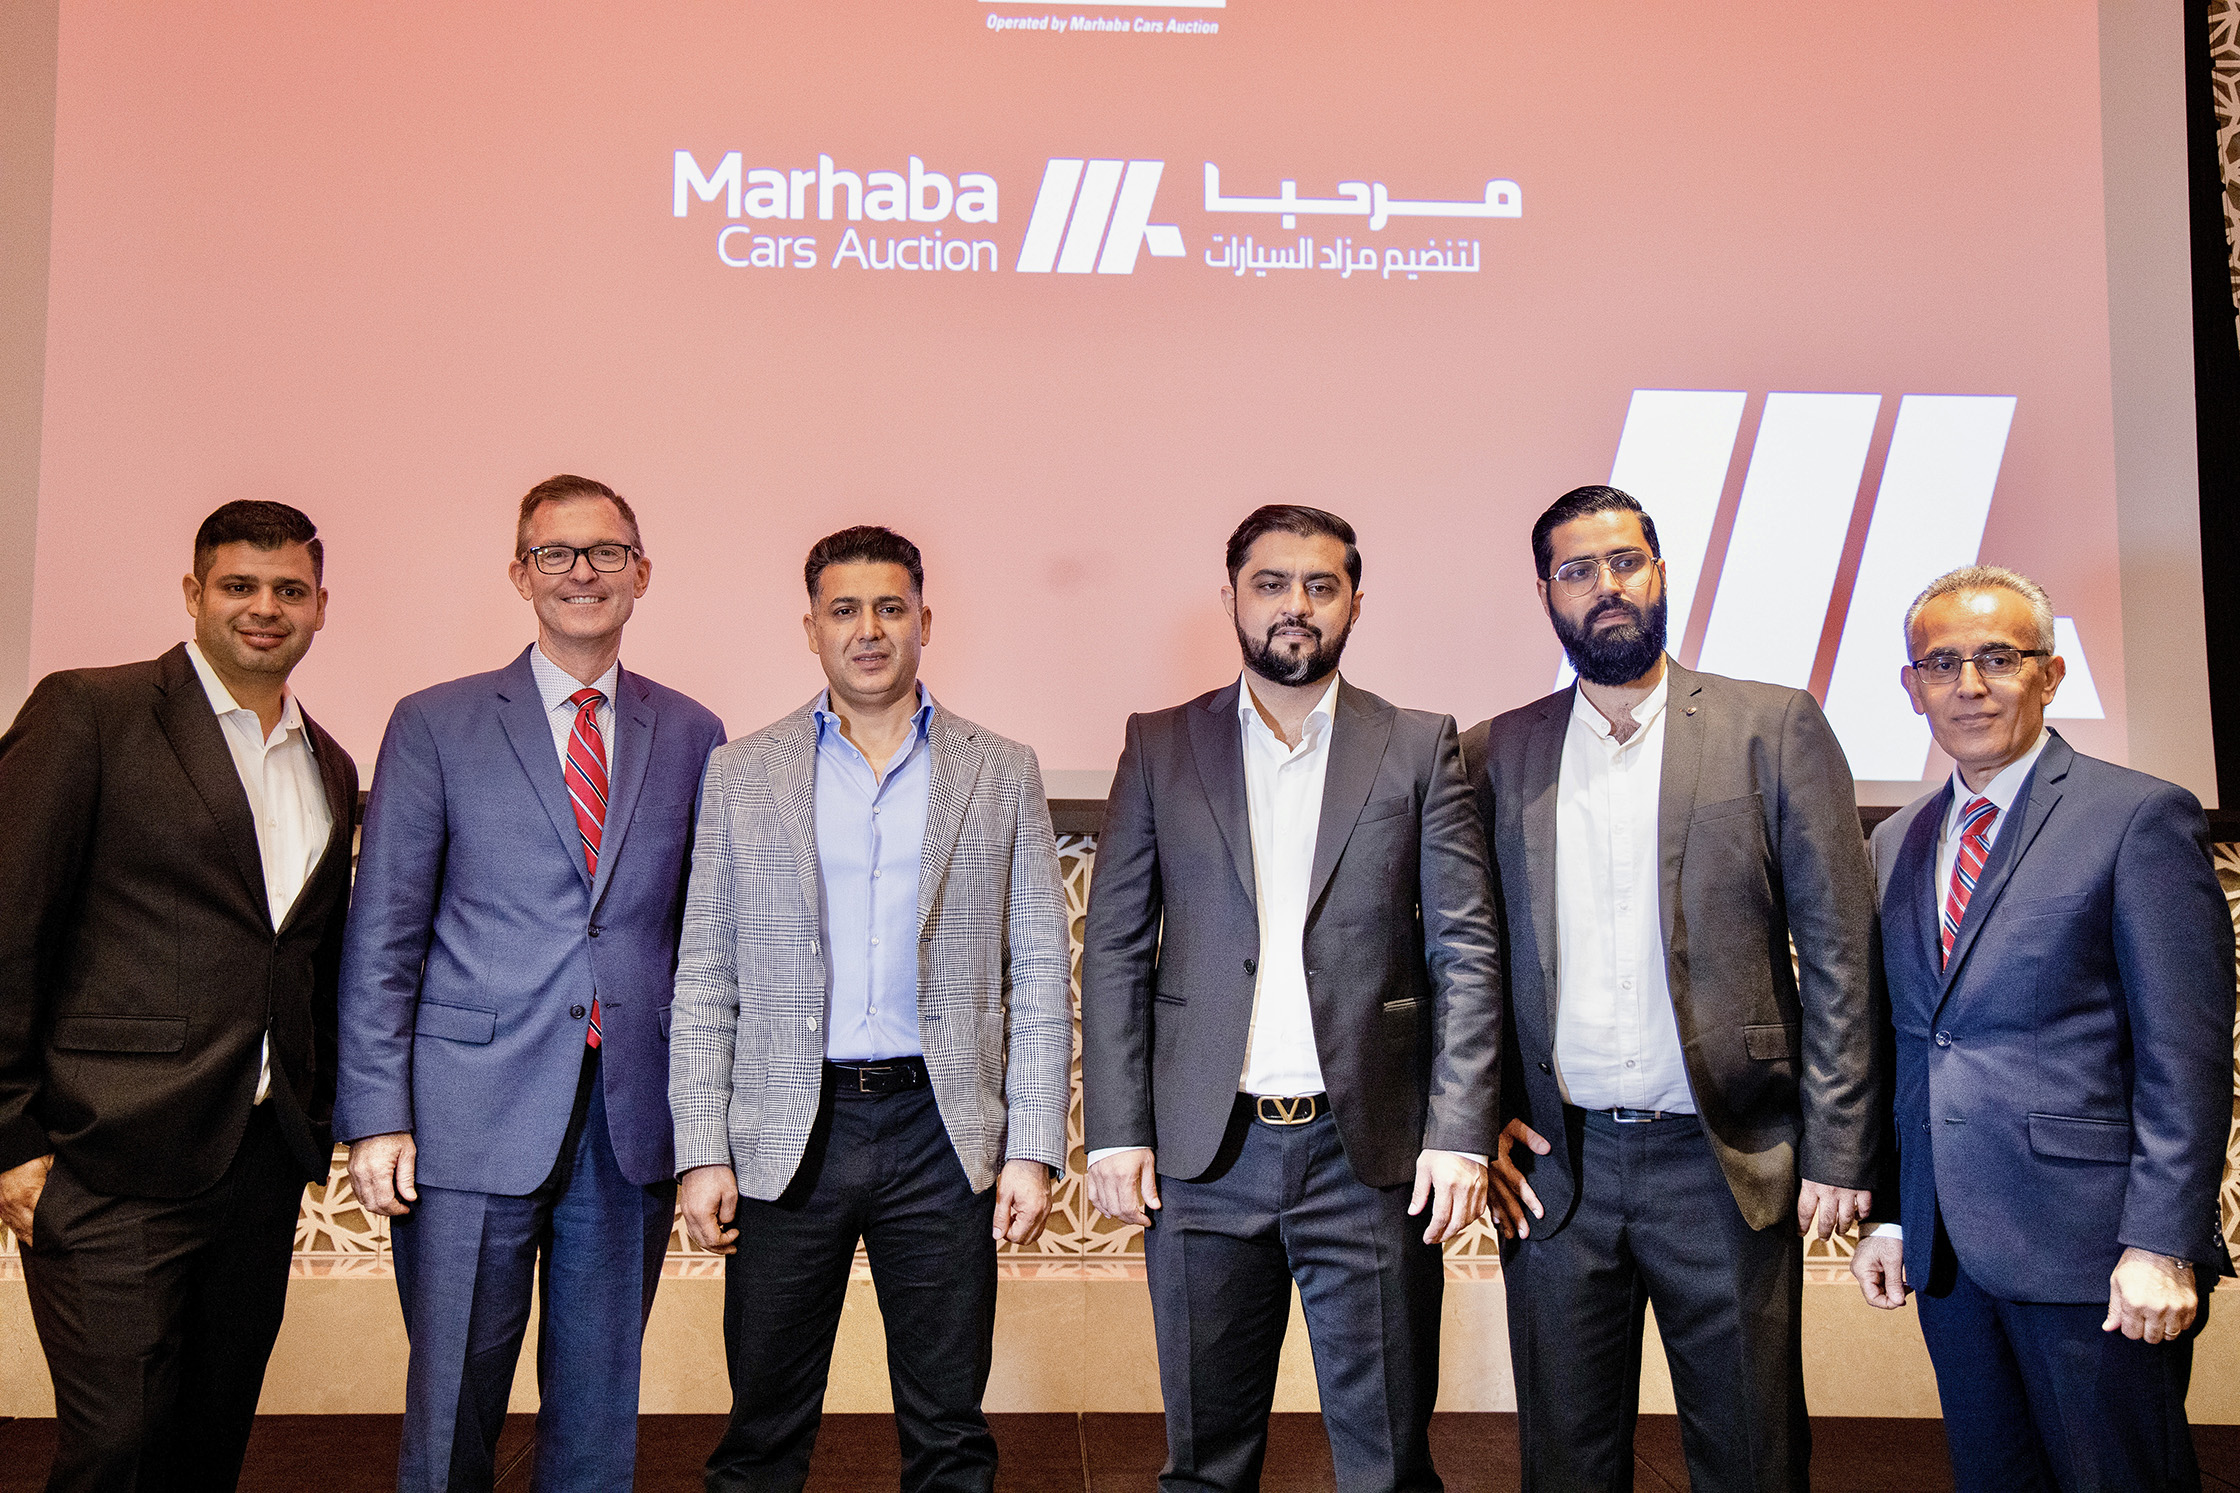 Marhaba Cars Auction is now IAA's official partner in the UAE & Opens Tasjeel Testing Center in the Auction